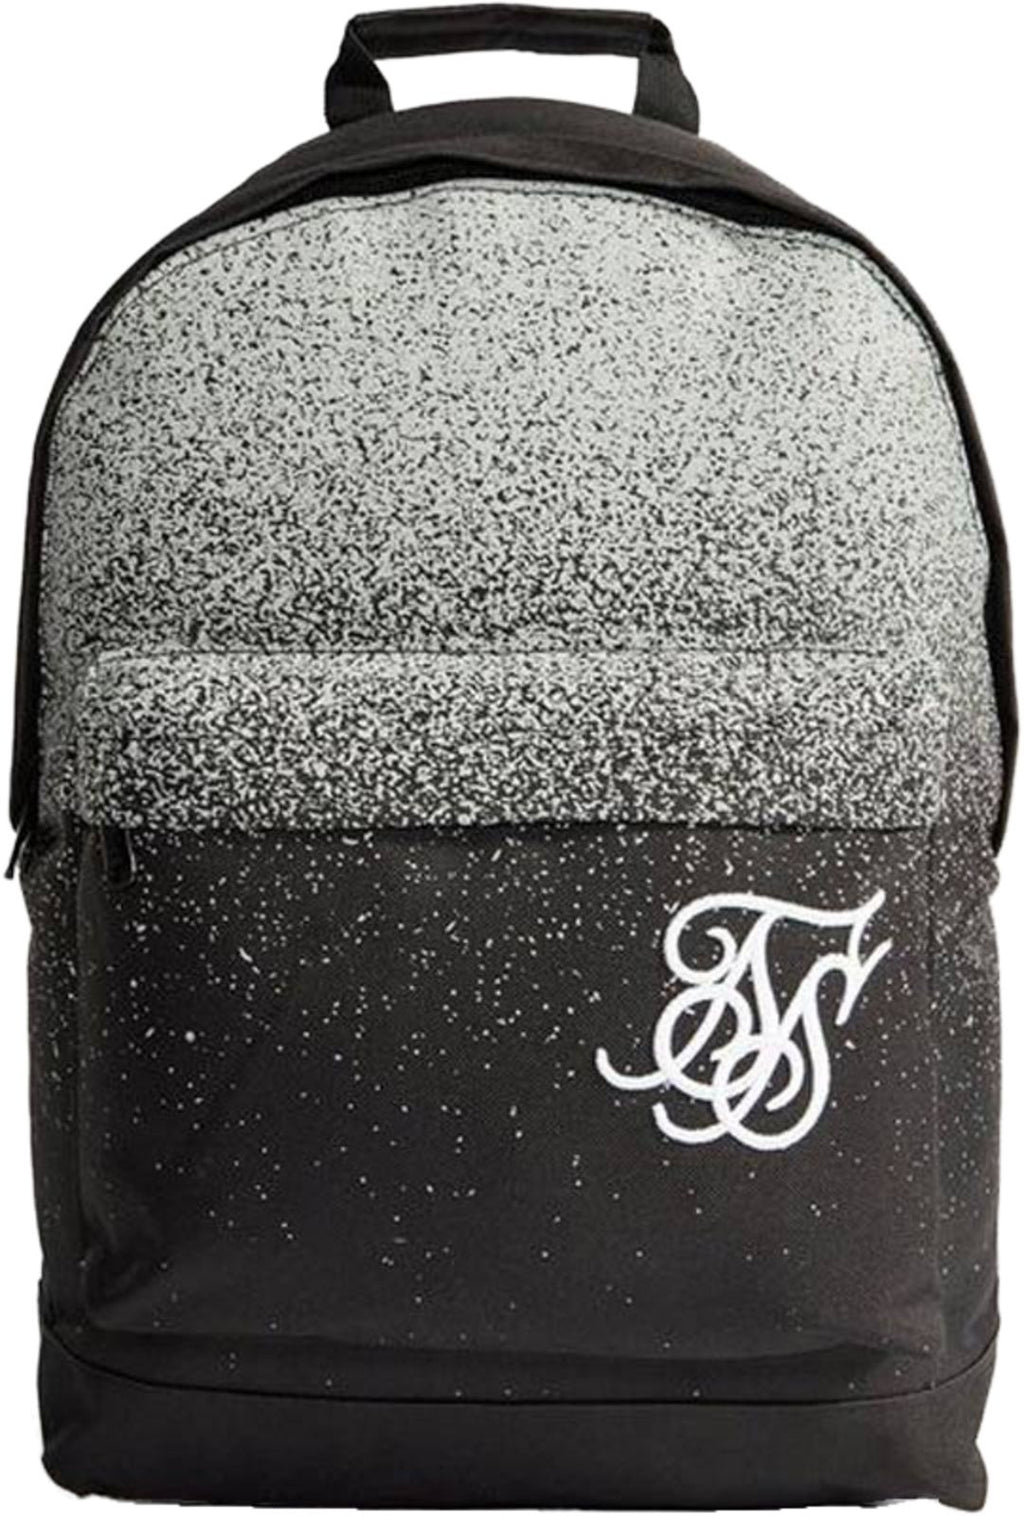 Sik Silk Reflective Splatter Pouch Backpack Bag